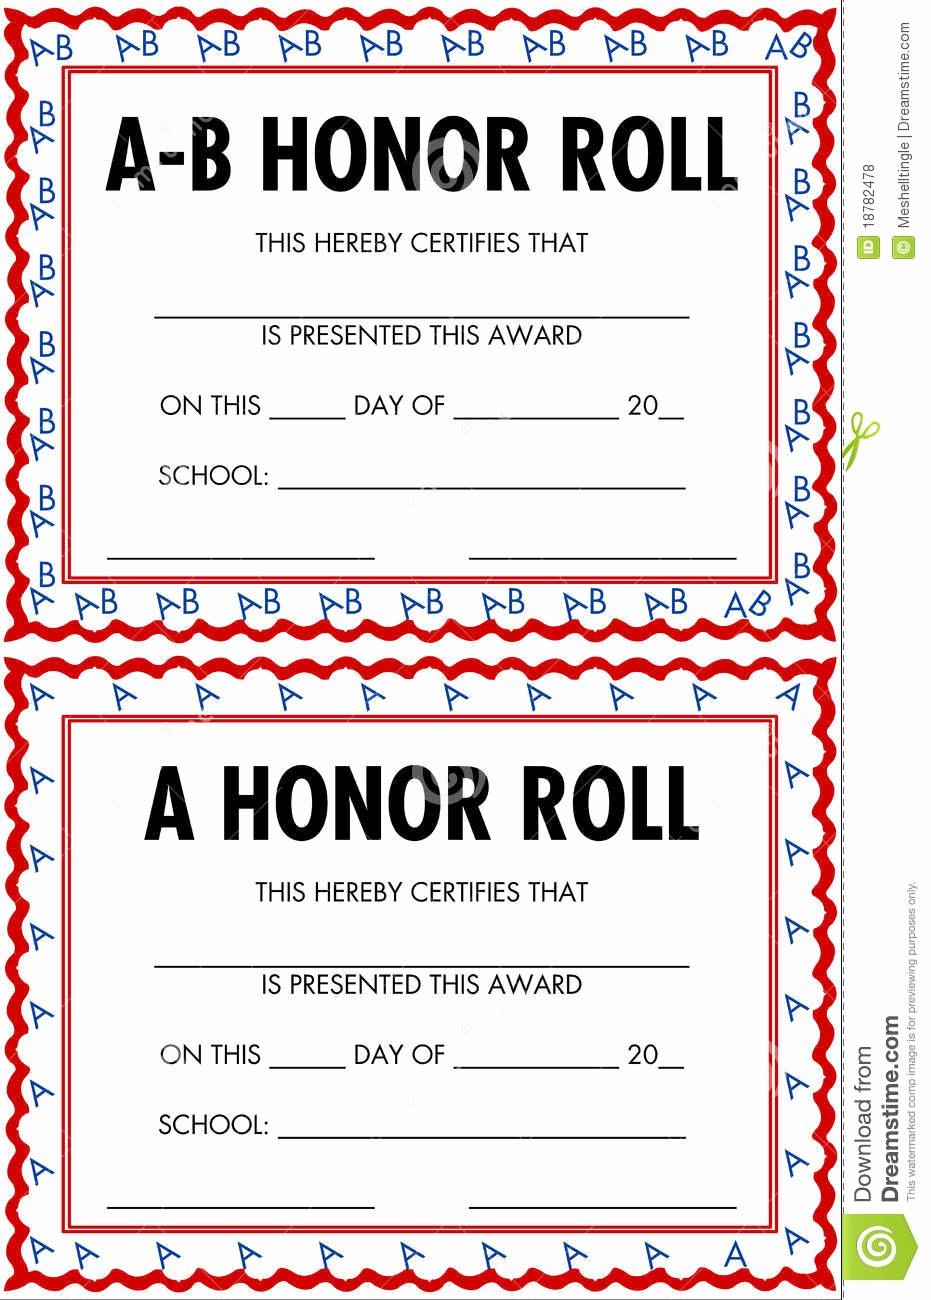 royalty free stock photos honor roll certificates image